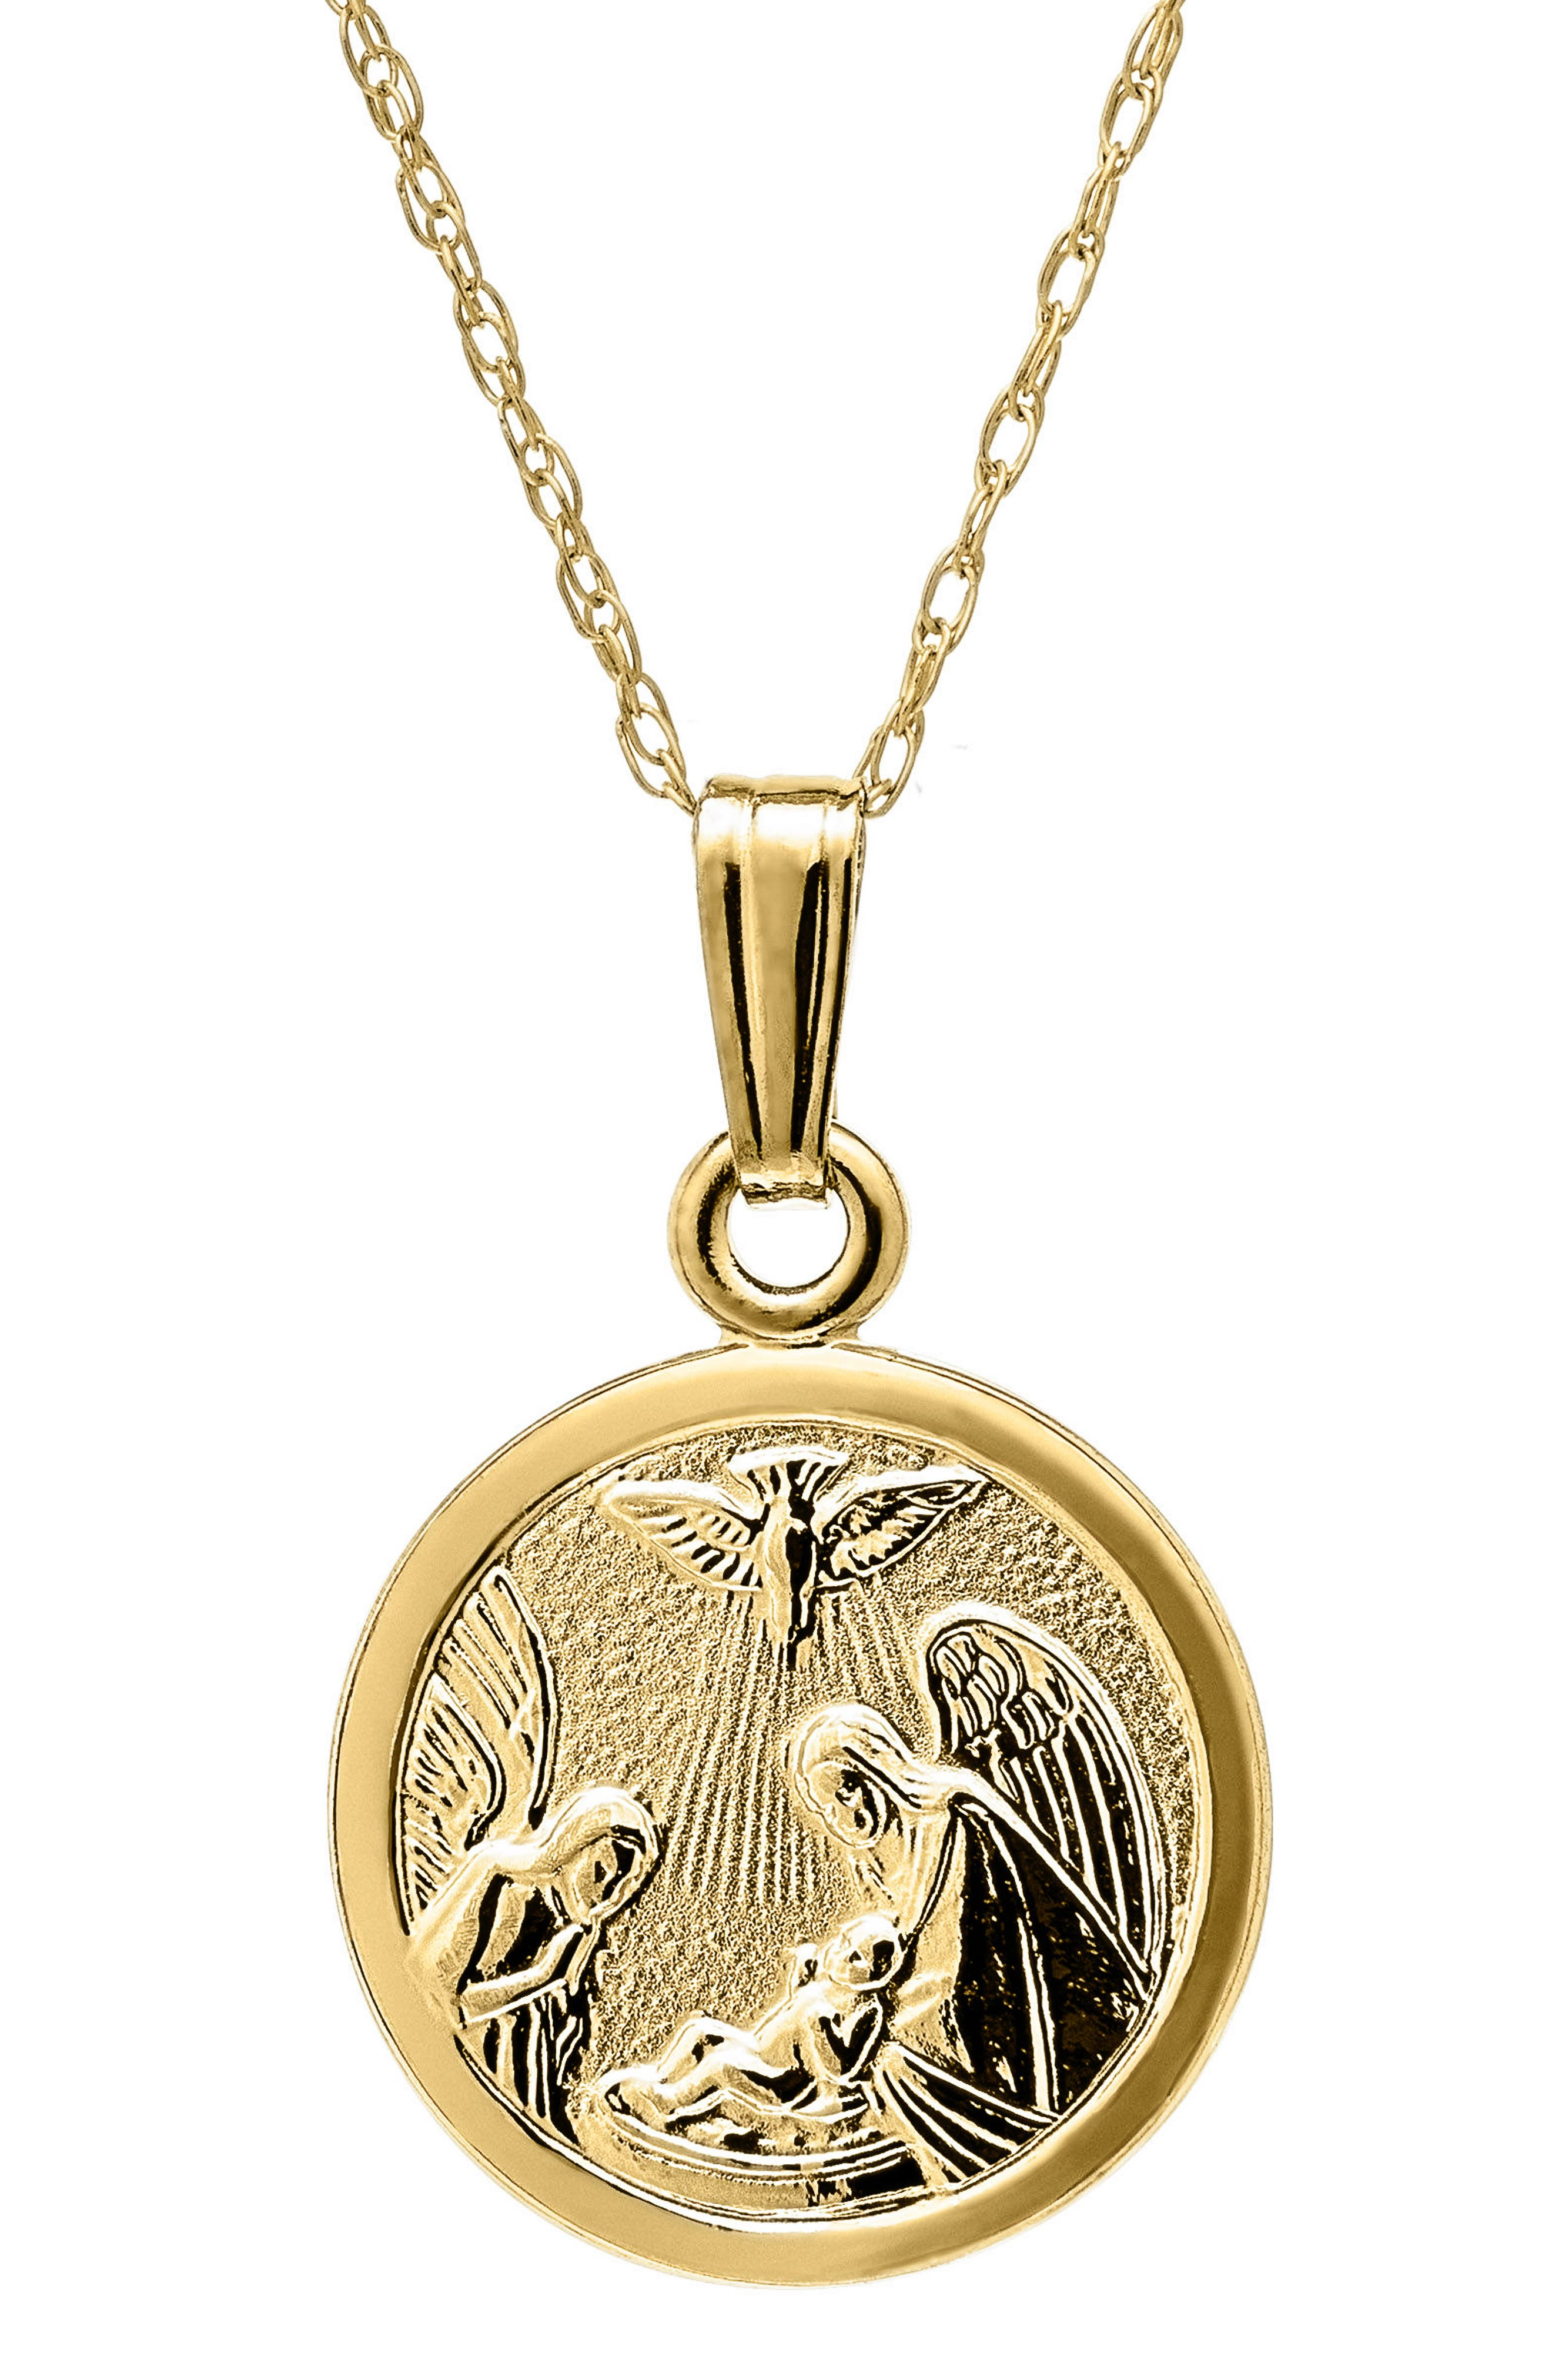 14k Gold Guardian Angel Pendant Necklace,                         Main,                         color, Gold